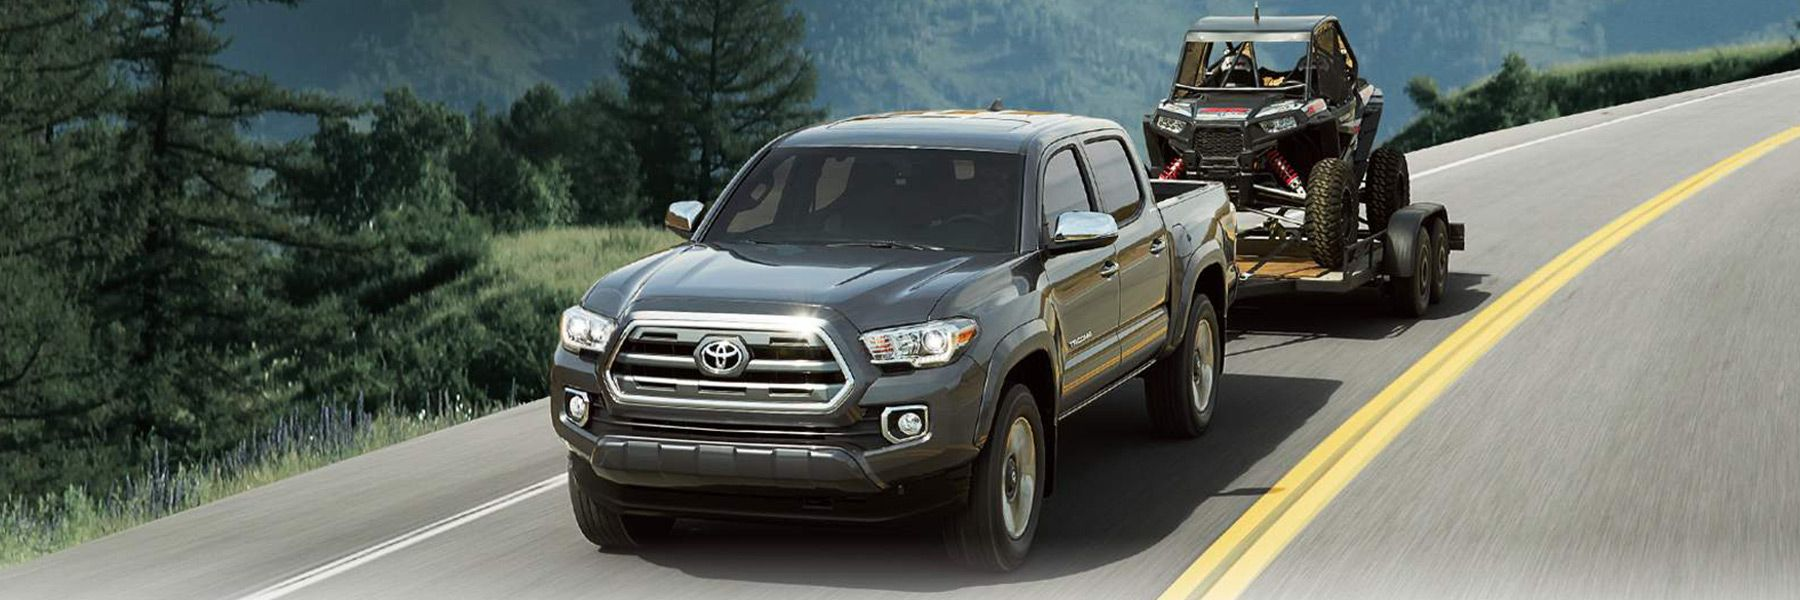 Tacoma-towing